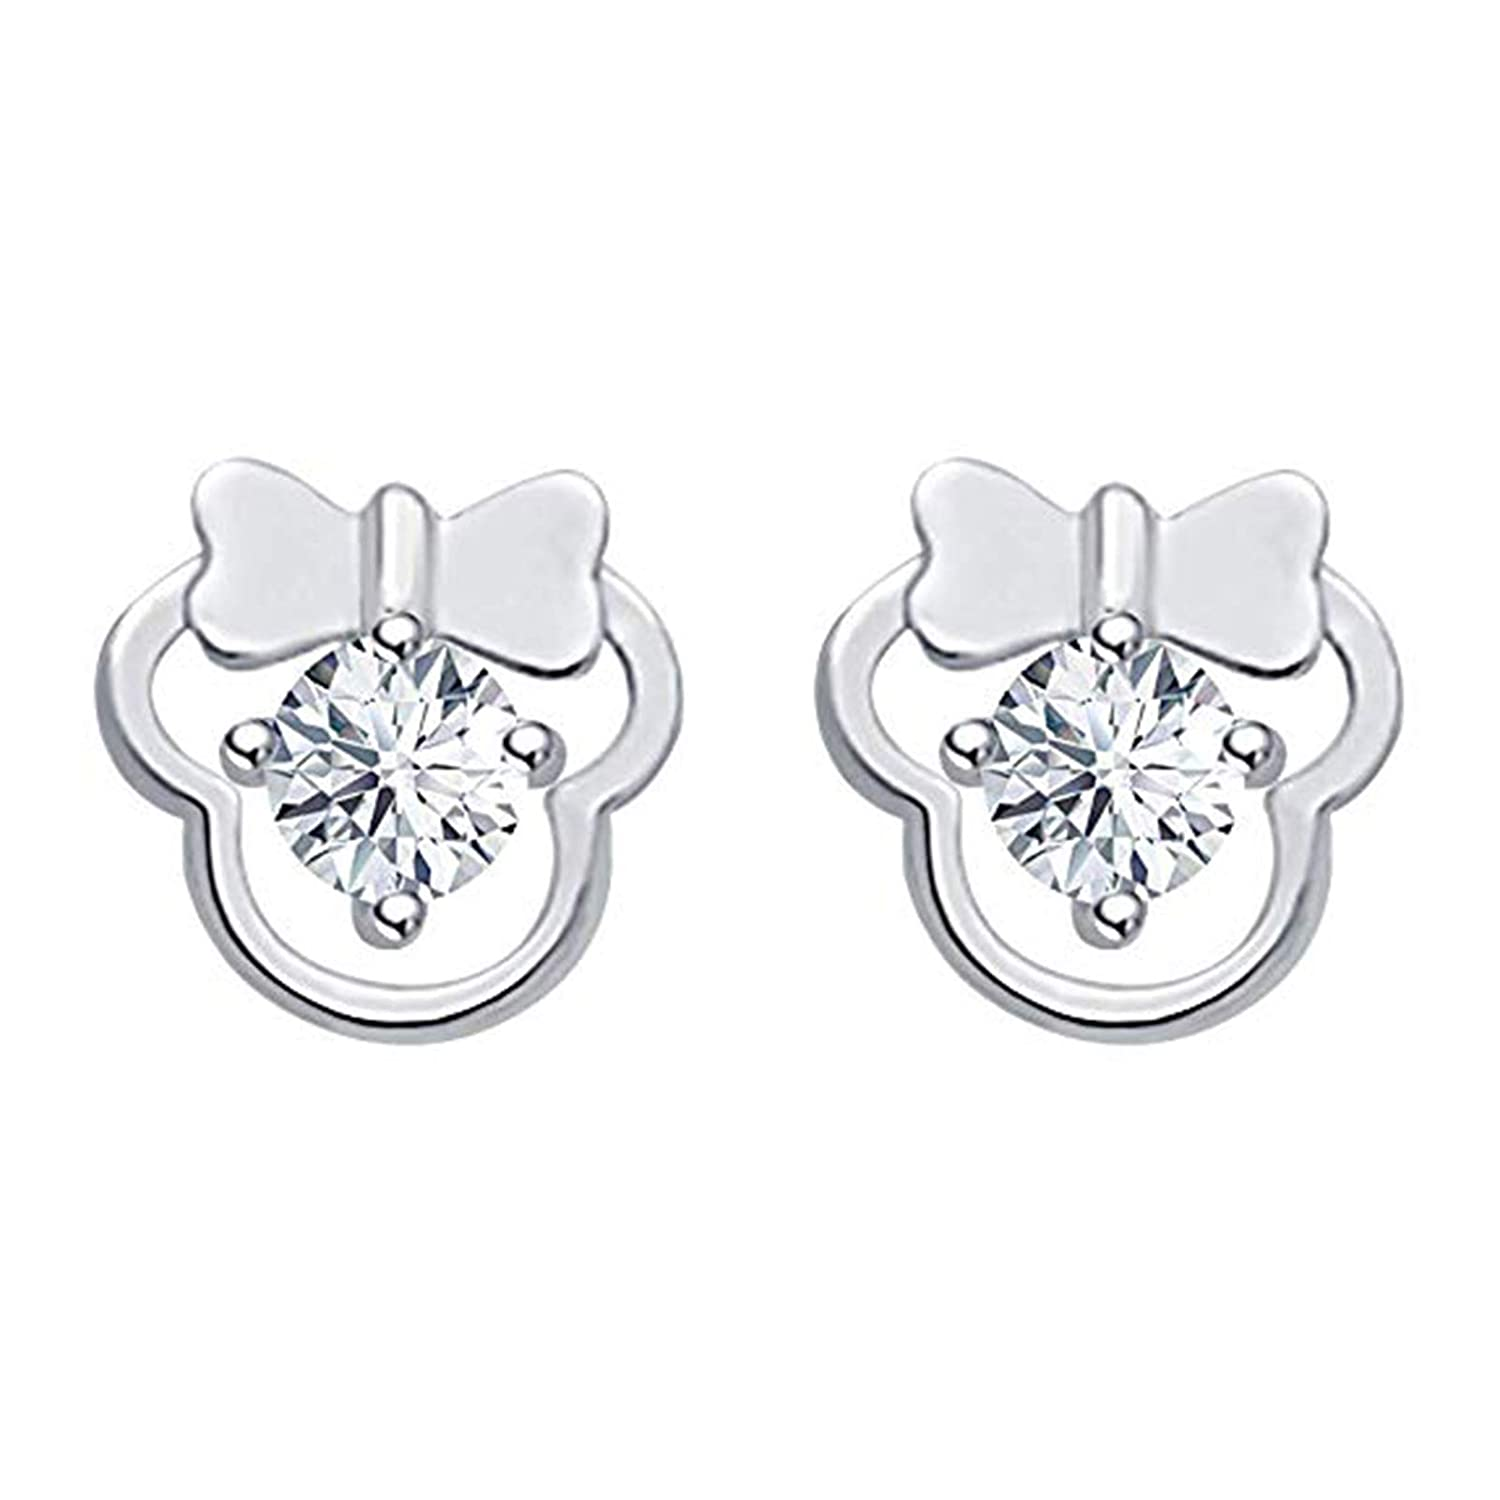 Suhana Jewellery Disney Mickey Earrings Collection 14K Gold Fn Round CZ Gift for Girls Womens